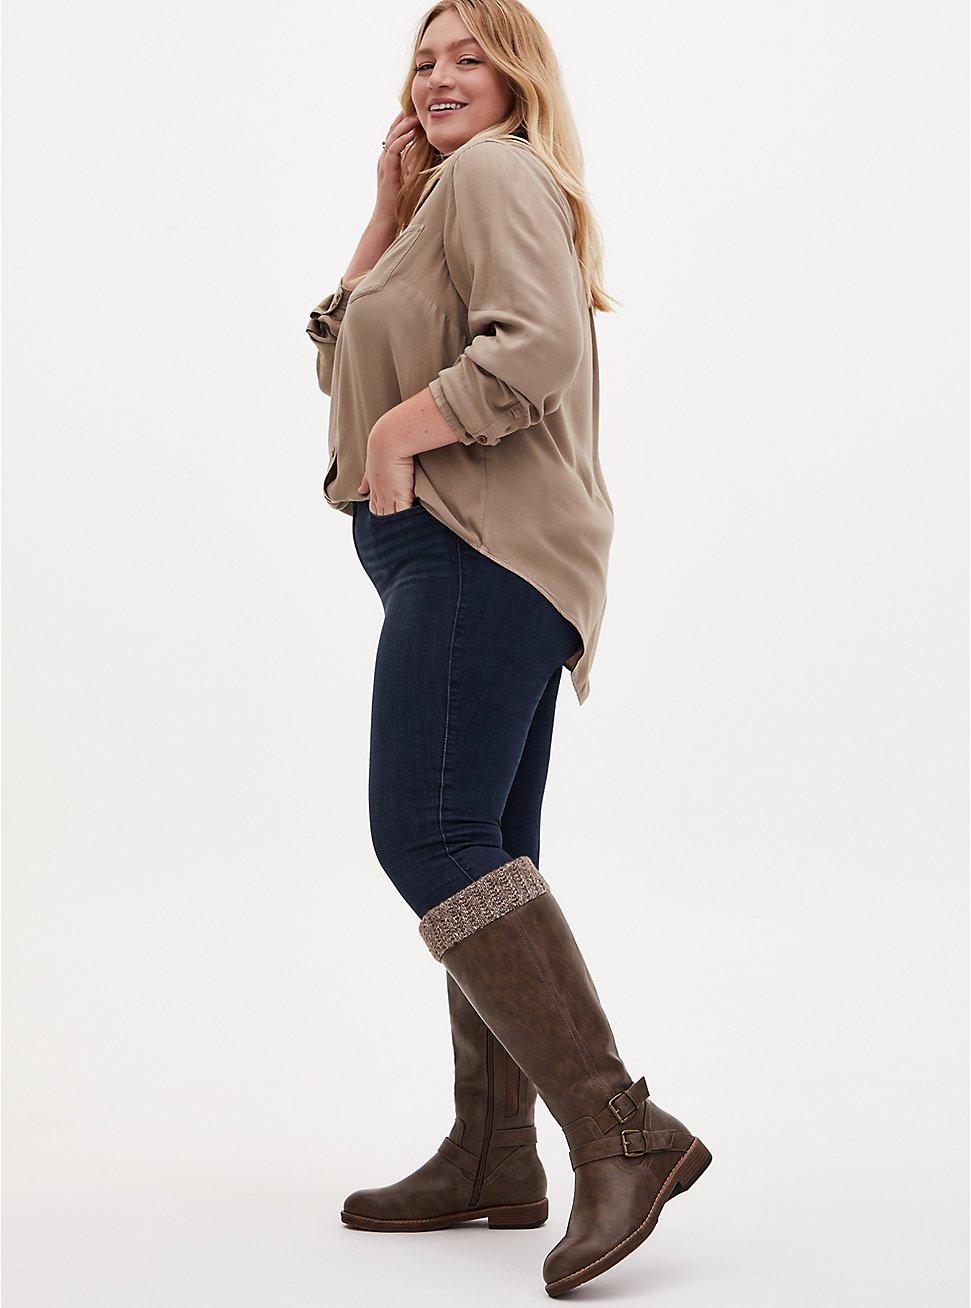 Taupe Faux Leather Sweater-Trimmed Knee-High Boot (WW & Wide to Extra Wide Calf), TAN/BEIGE, hi-res